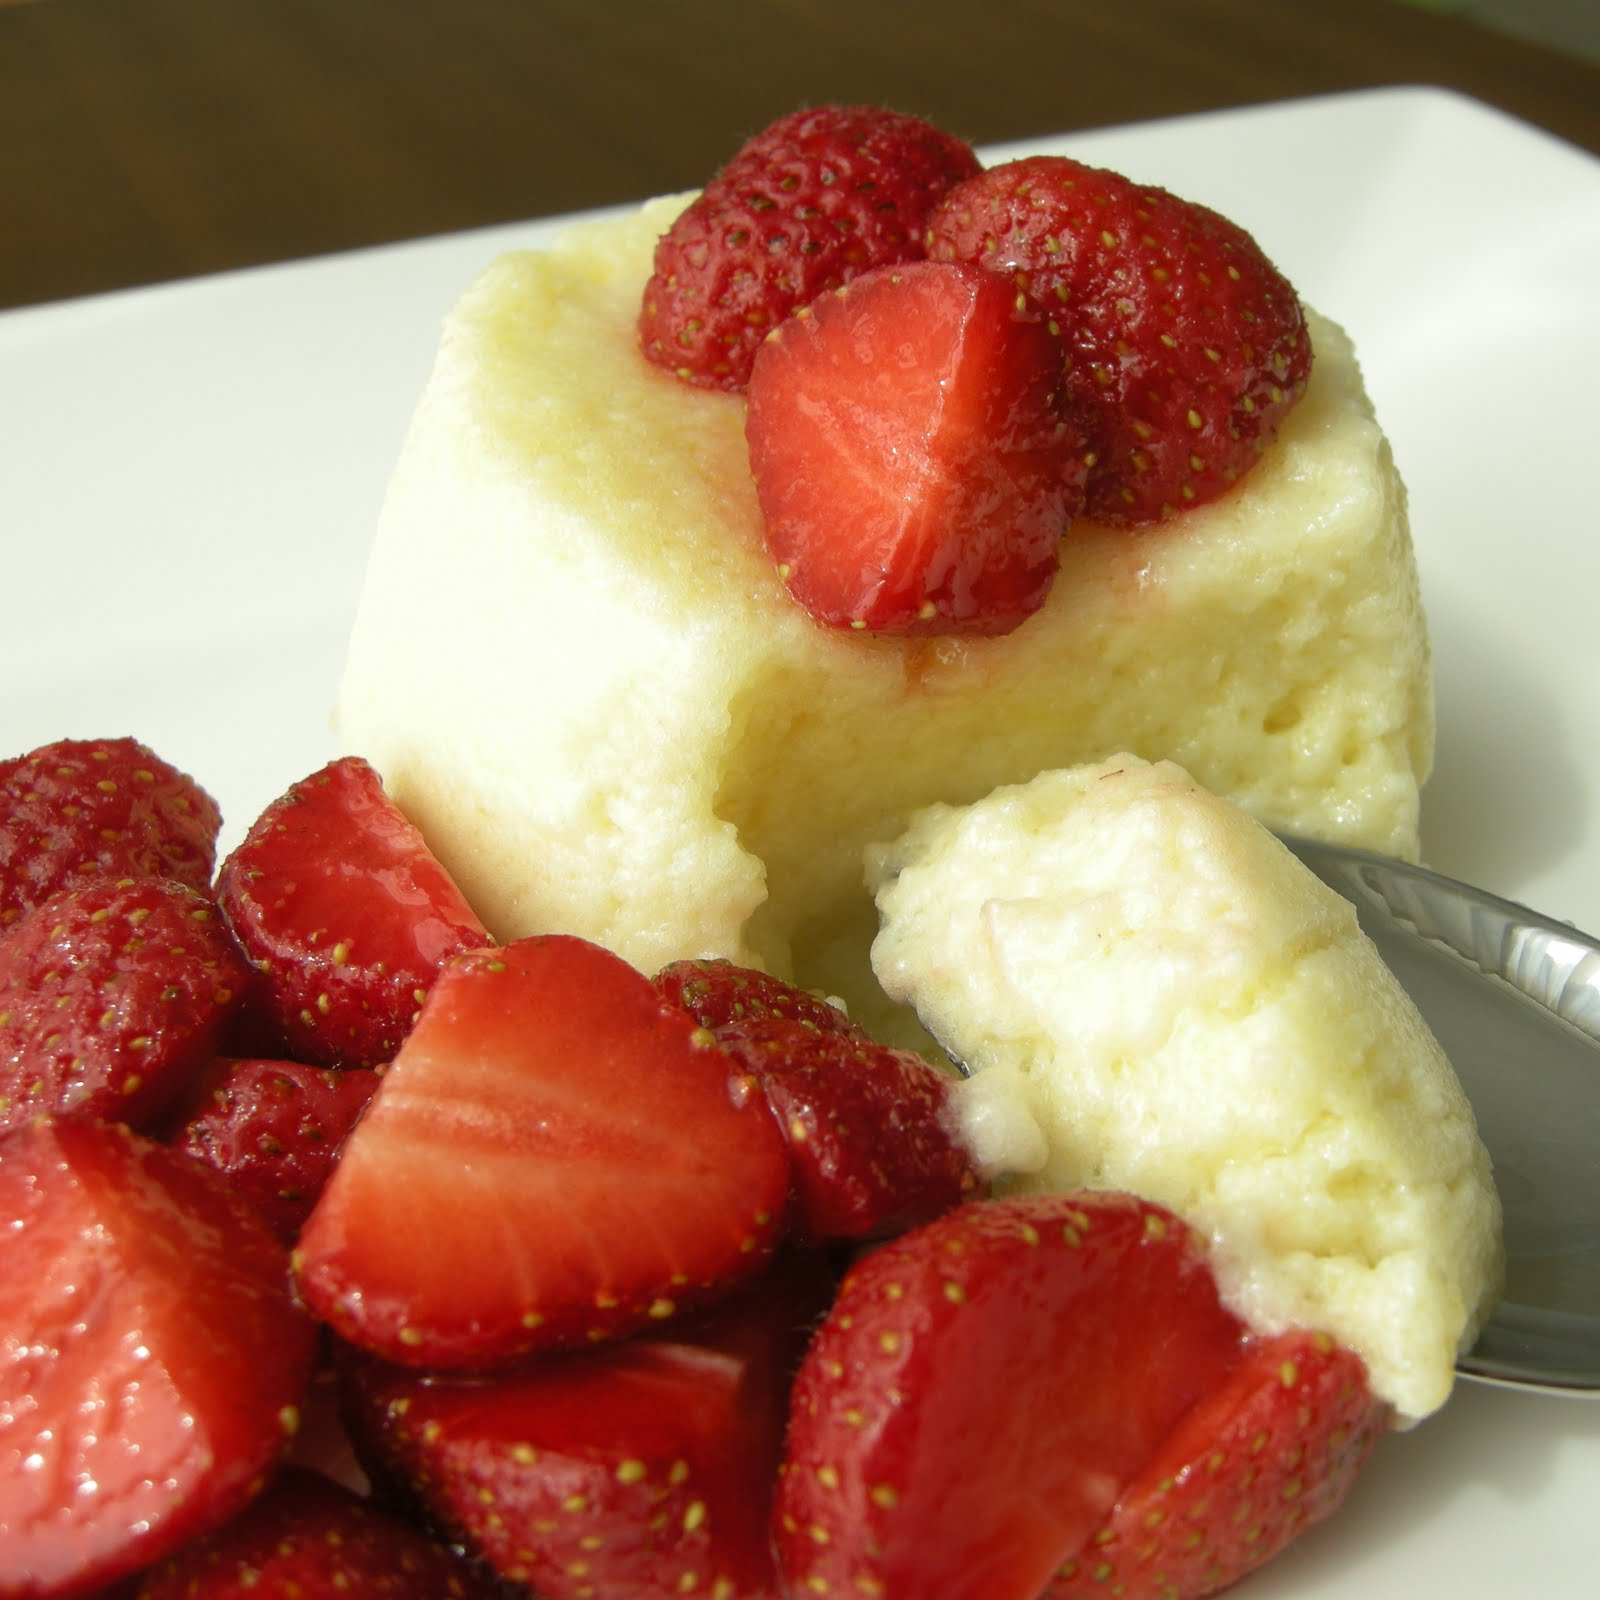 Mary Mary Culinary: Lemon-buttermilk sponge pudding with strawberries